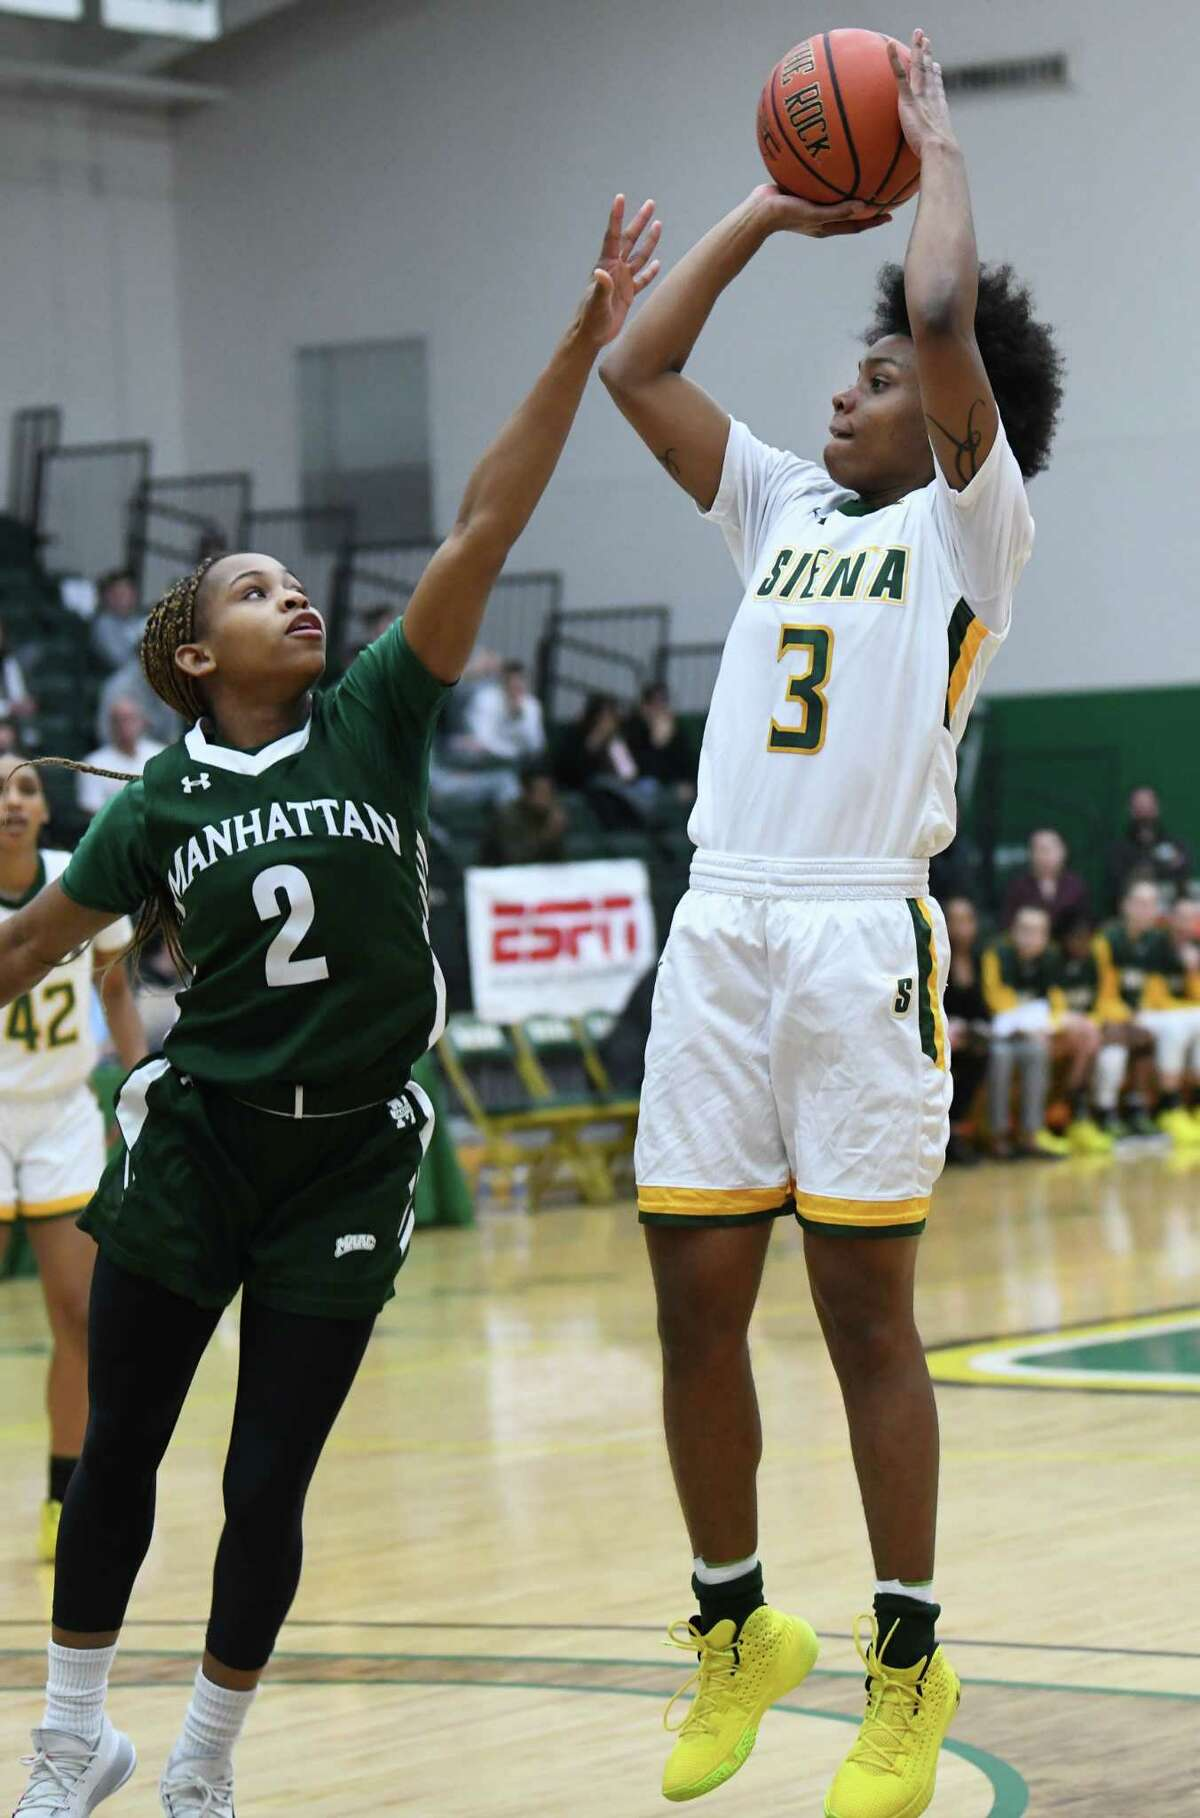 Siena's Rayshel Brown takes a jump shot over Manhatten defensive player Gabby Cajou during a game on Thursday, Jan. 16, 2020 in Loudonville, N.Y. It was also the